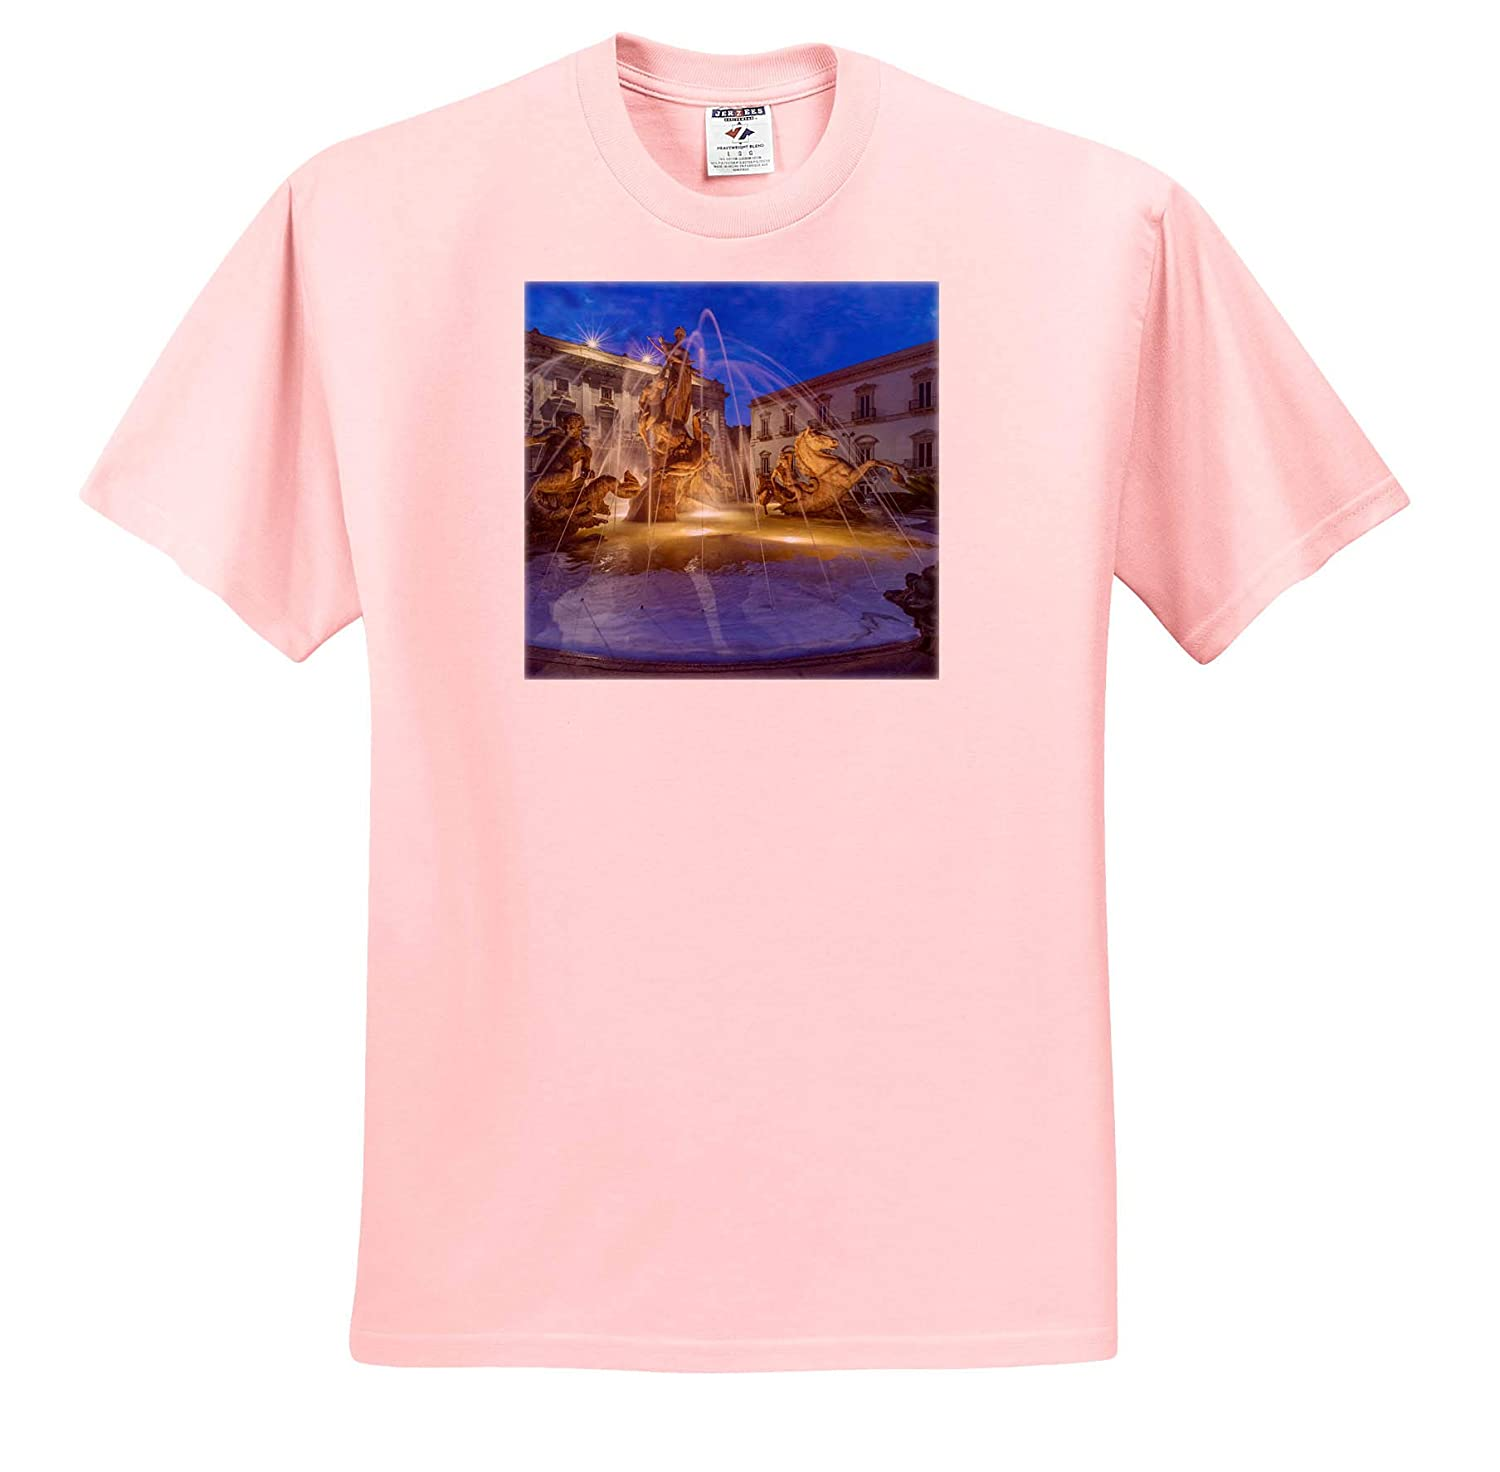 Syracuse Adult T-Shirt XL ts/_313746 Sicily Europe 3dRose Danita Delimont Italy Sicily Twilight Piazza Archimede